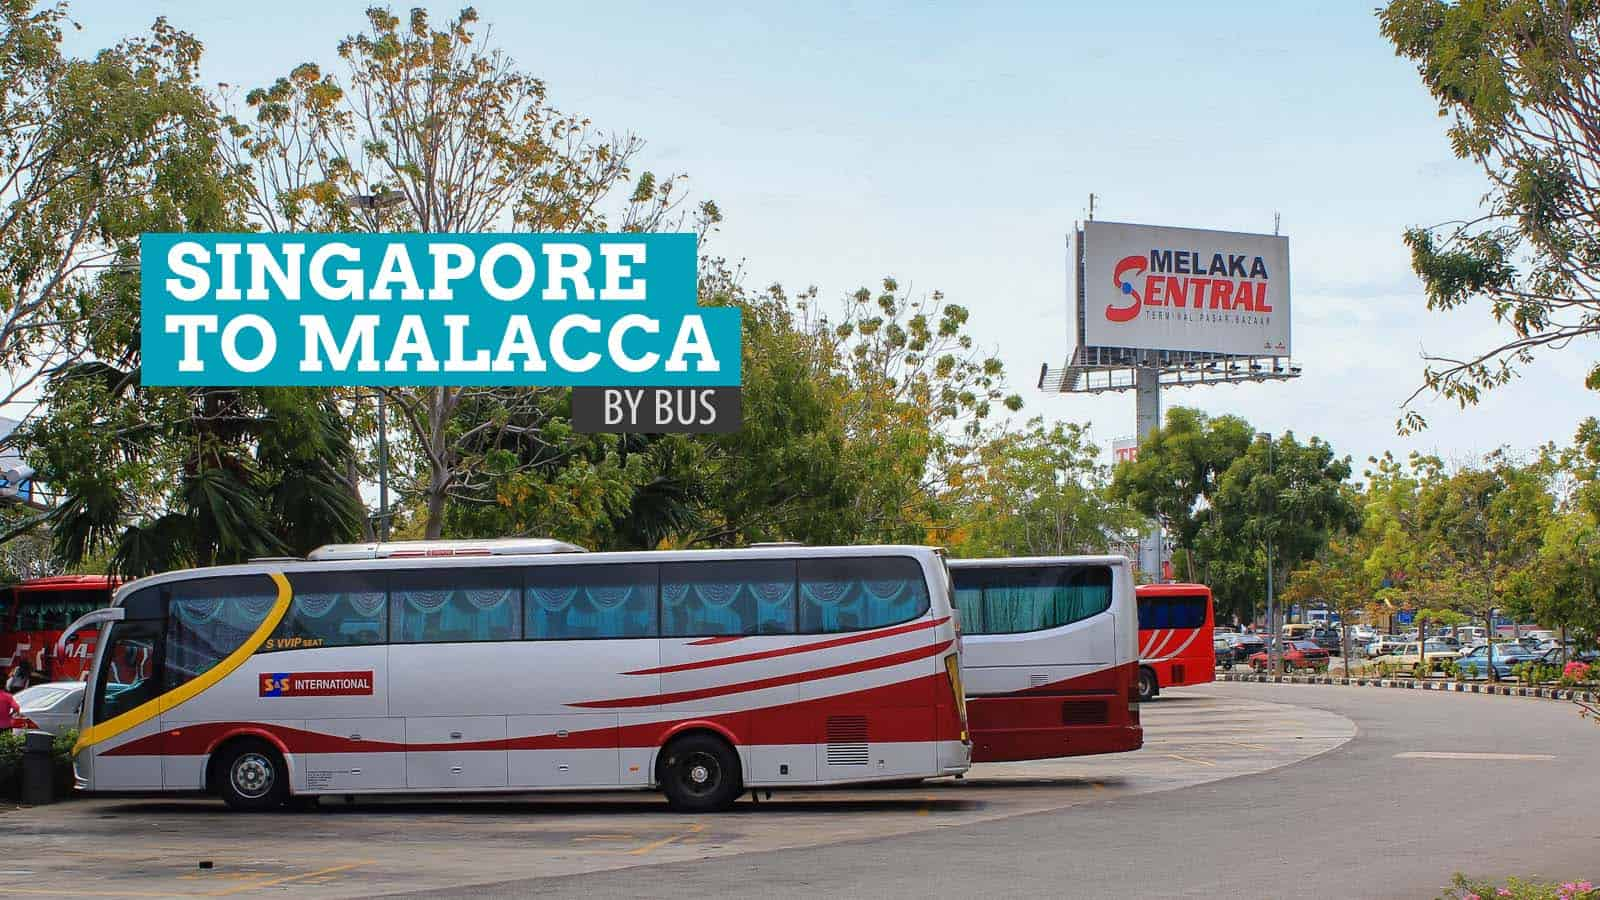 Singapore to Malacca by Bus